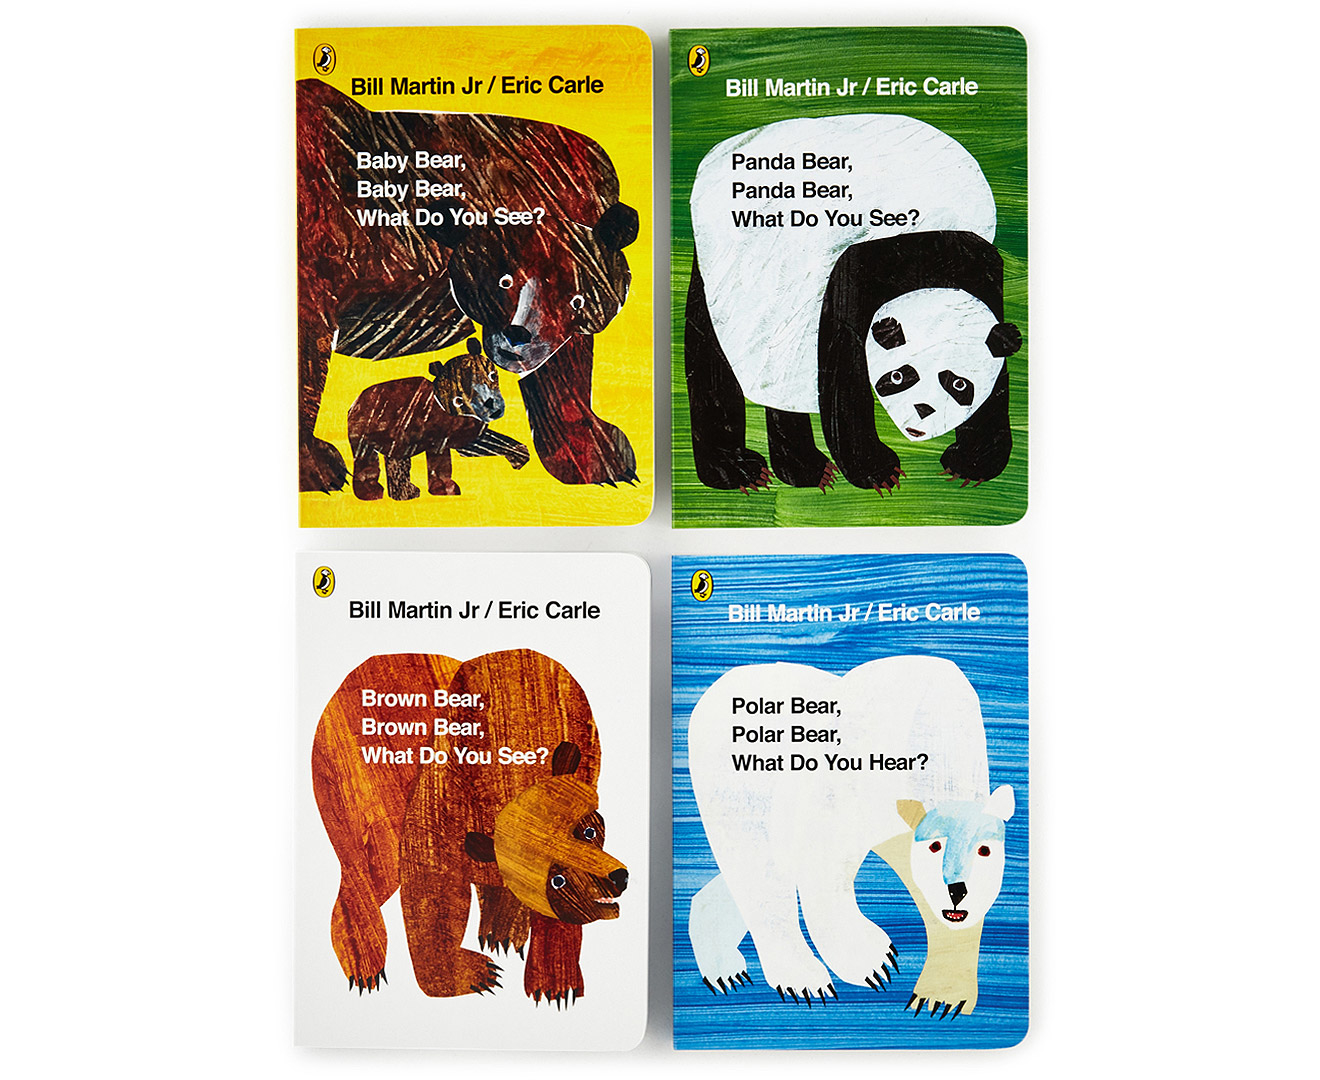 panda bear panda bear what do you see coloring pages - eric carle brown bear collection scoopon shopping